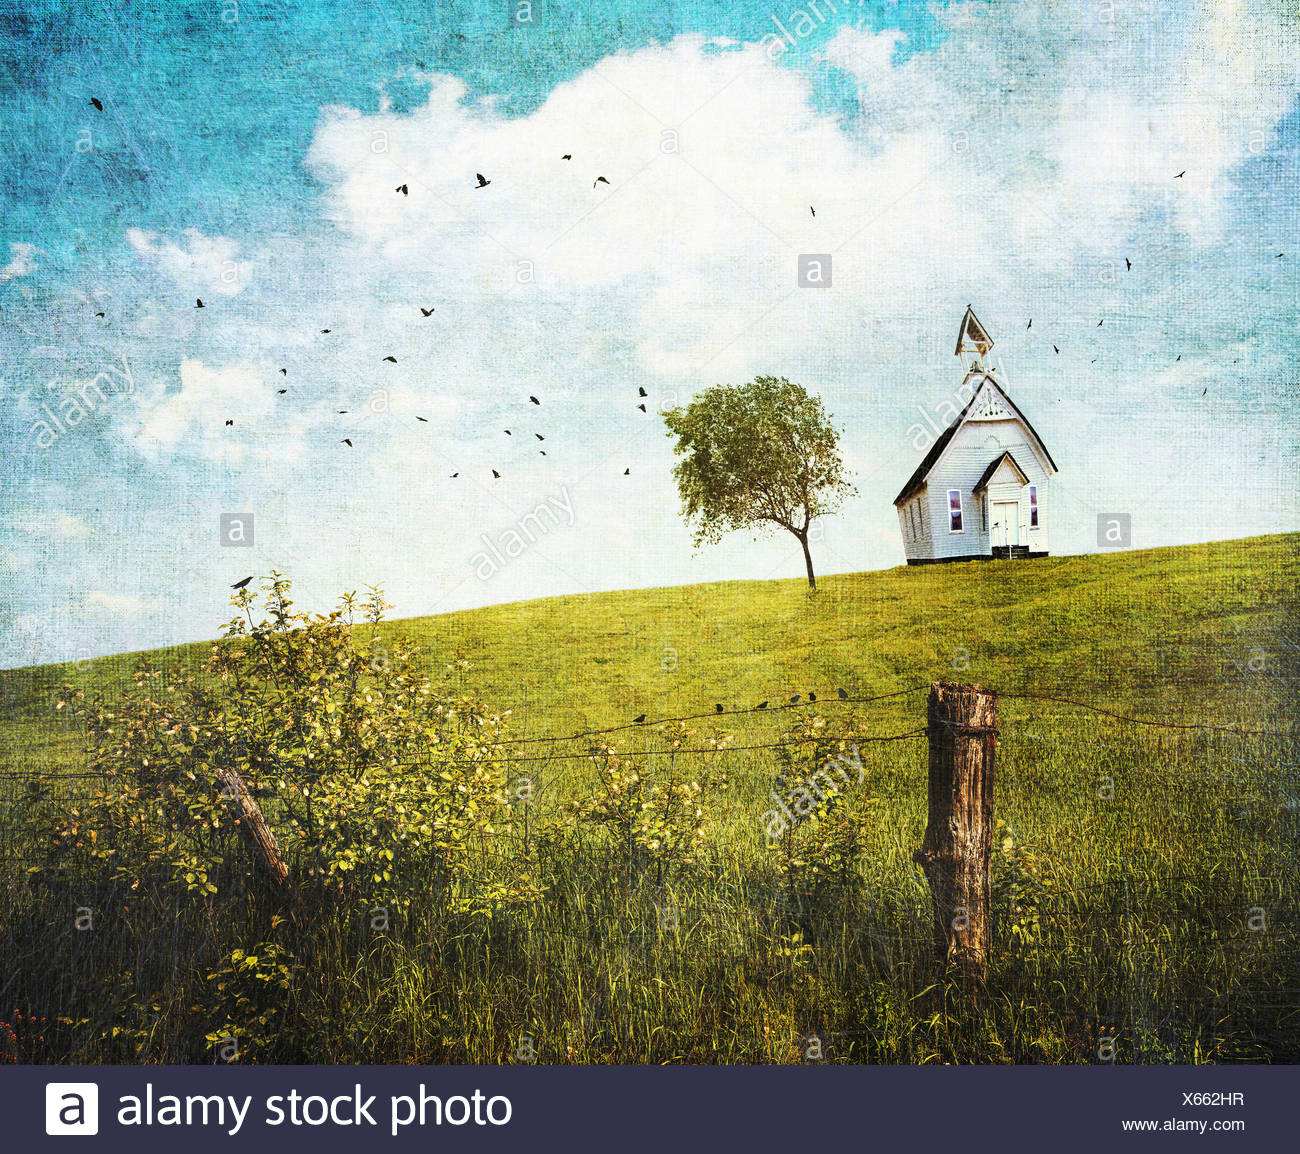 Old country school house  on a hill against a blue sky - Stock Image